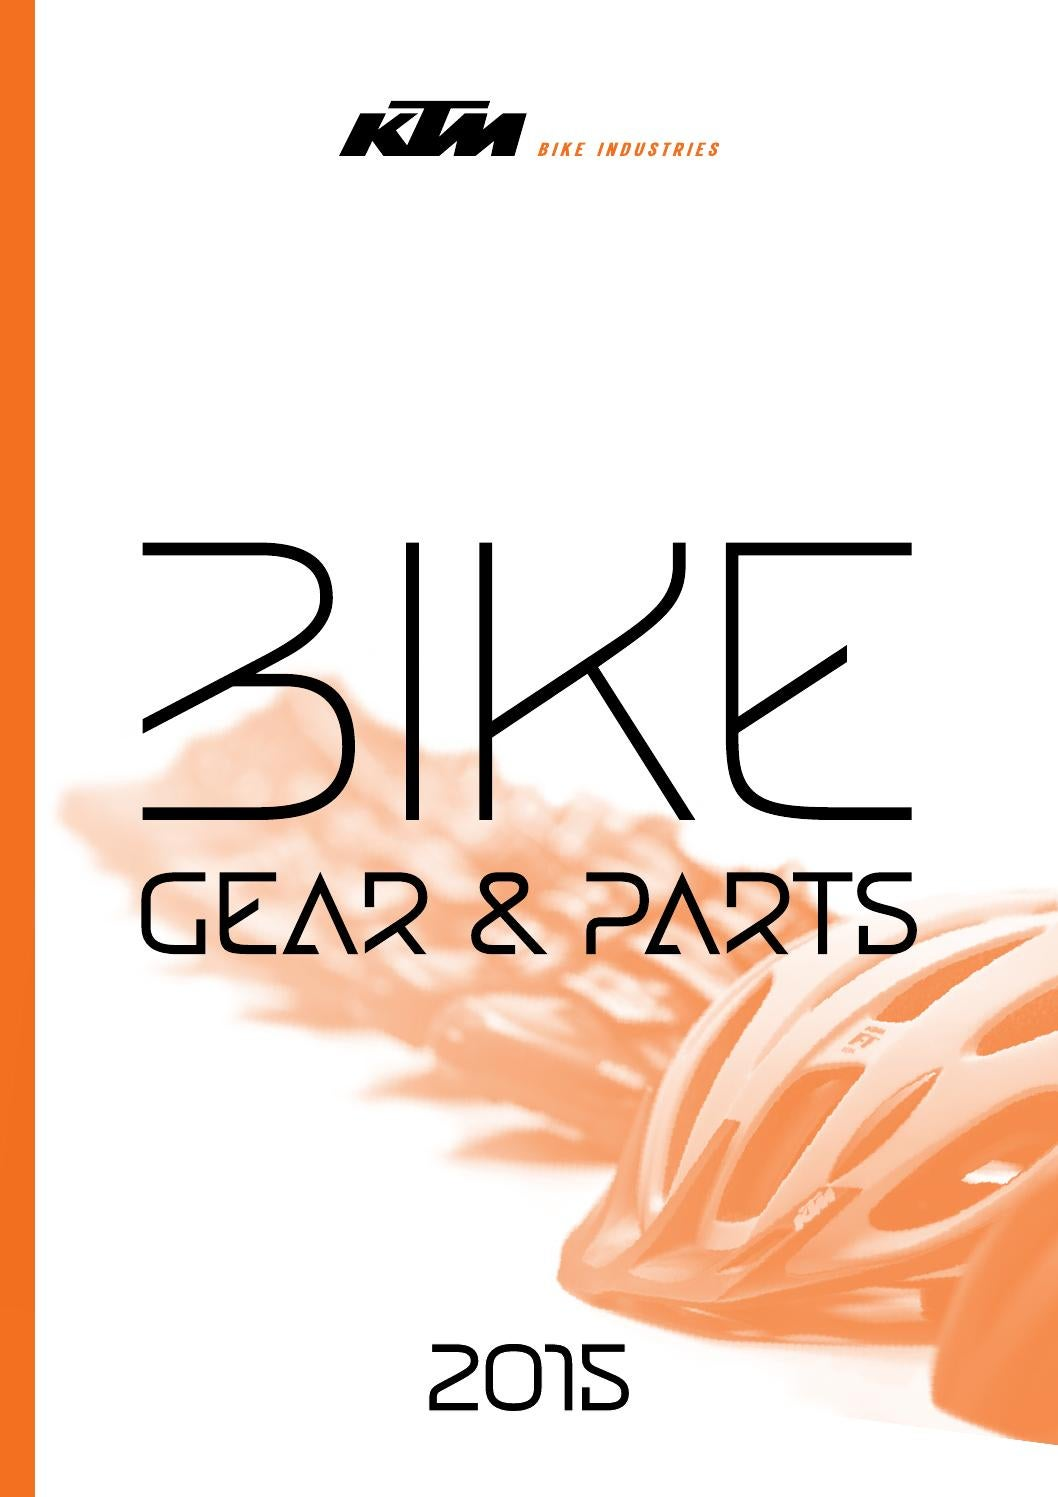 KTM Bike Gear & Parts 2015 by KTM Bike Industries - issuu